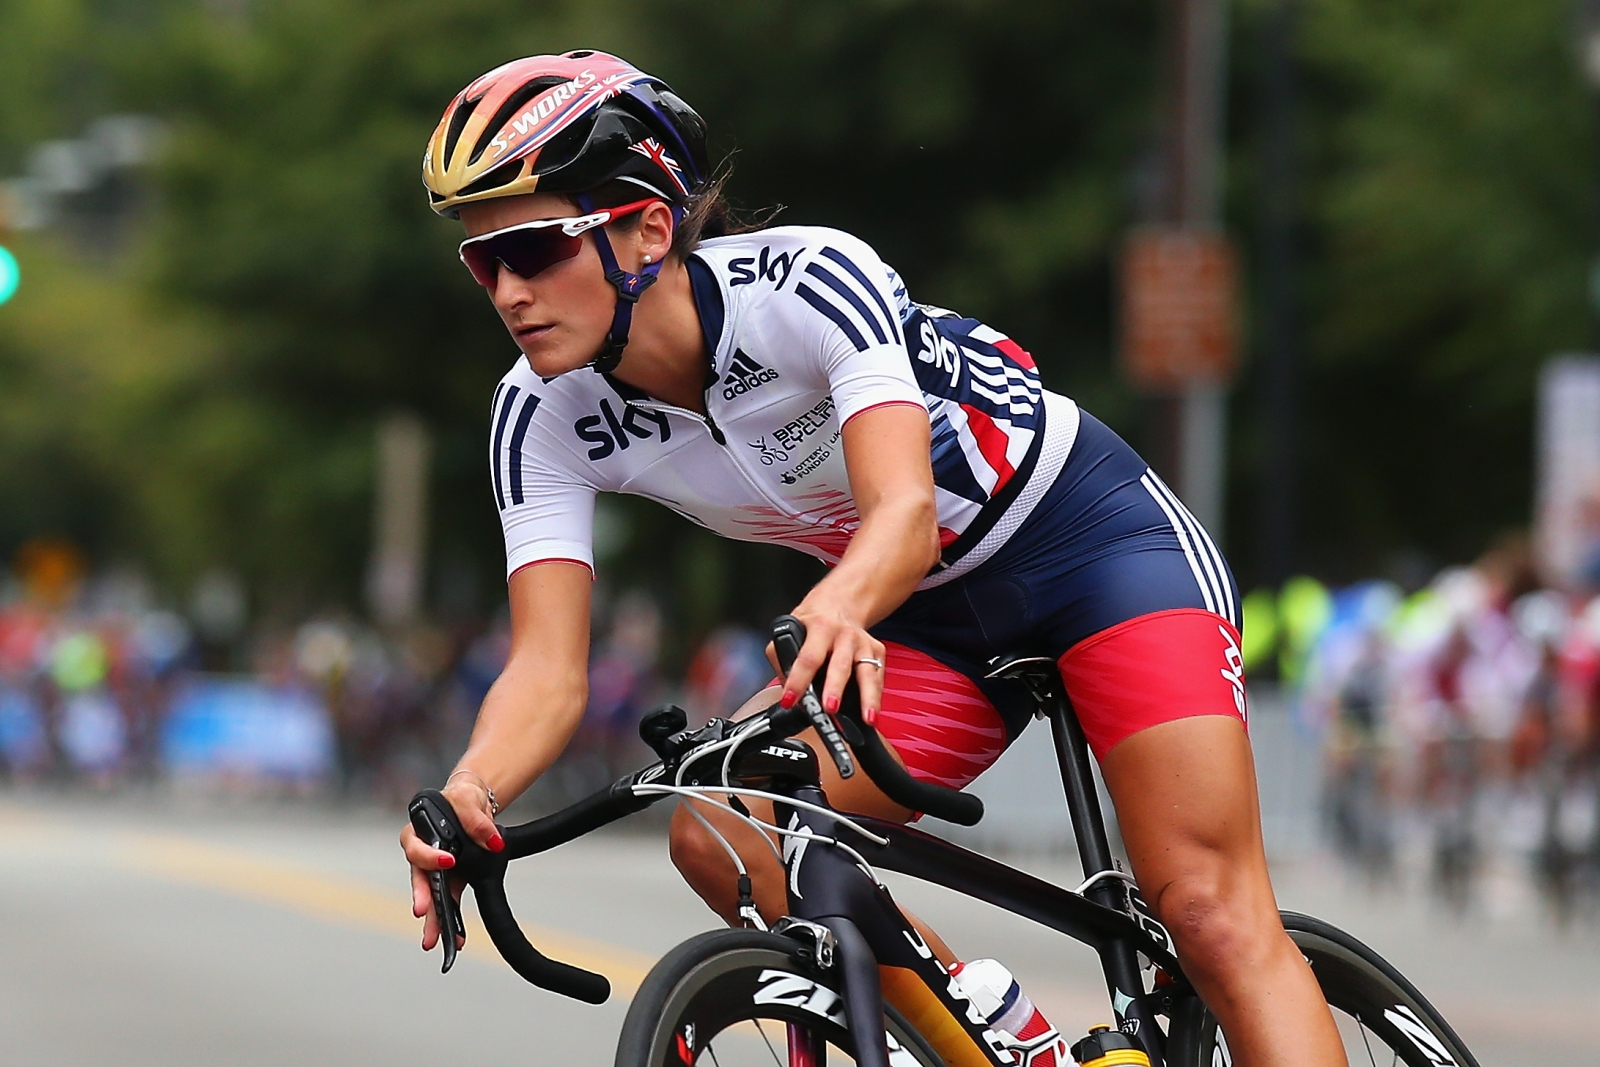 Rio 2016: British cyclist Lizzie Armitstead goes for gold